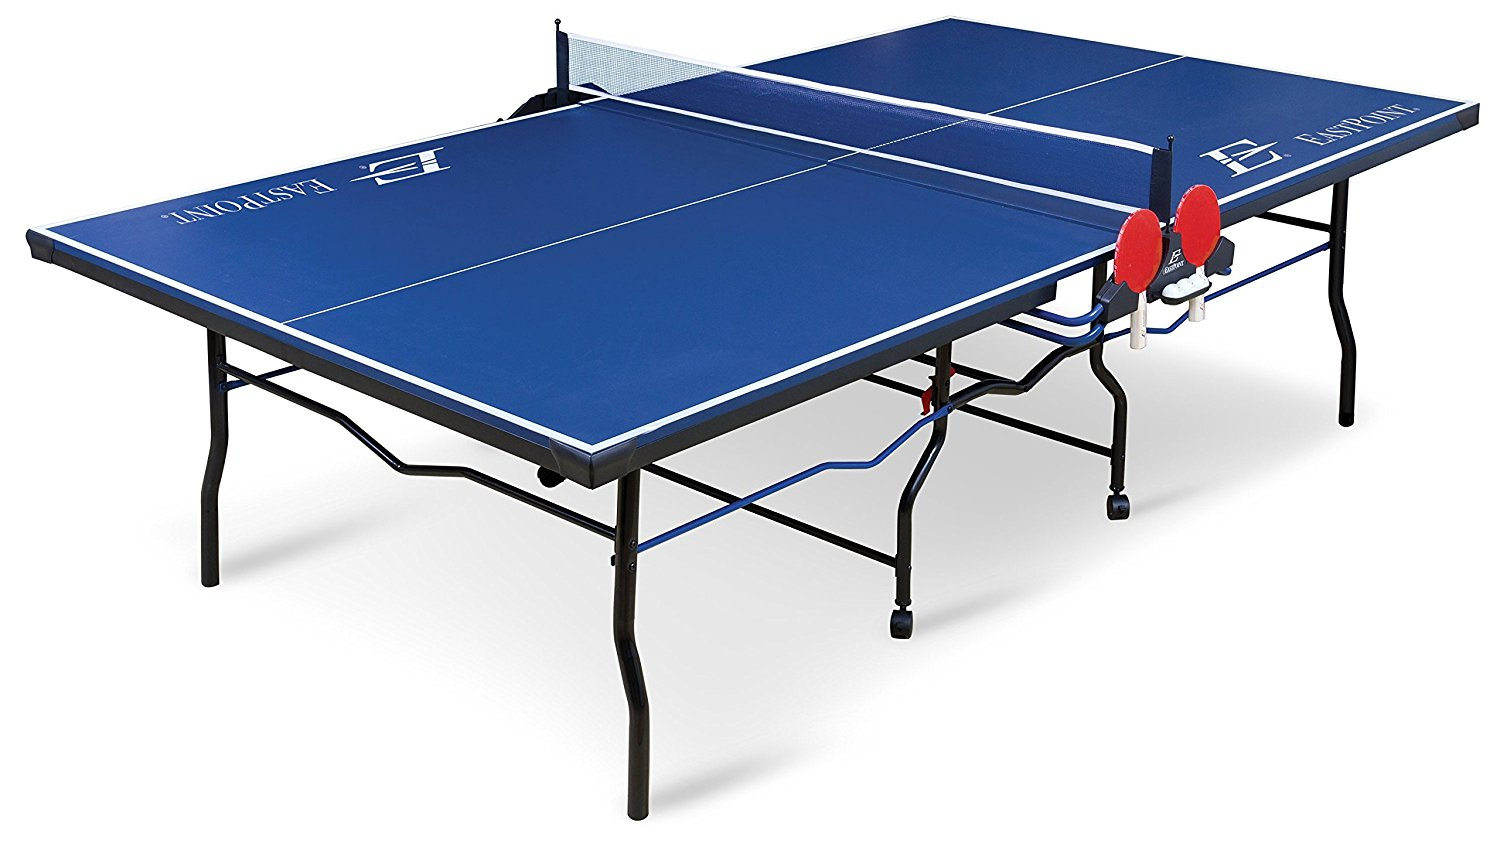 Eastpoint Sports Table Tennis Table Image